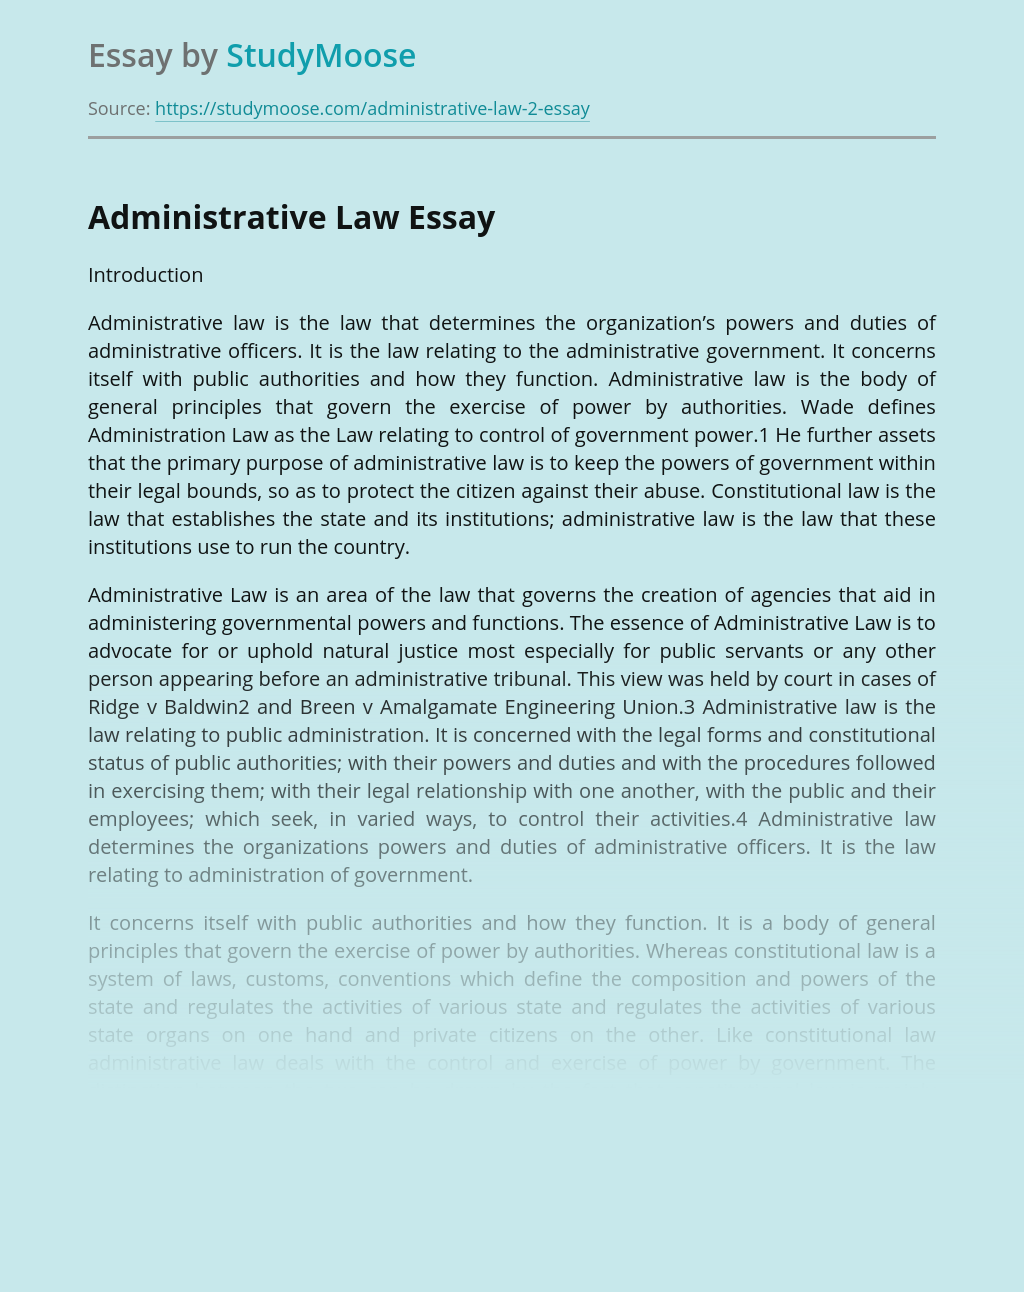 Nature and Purpose of Administrative law